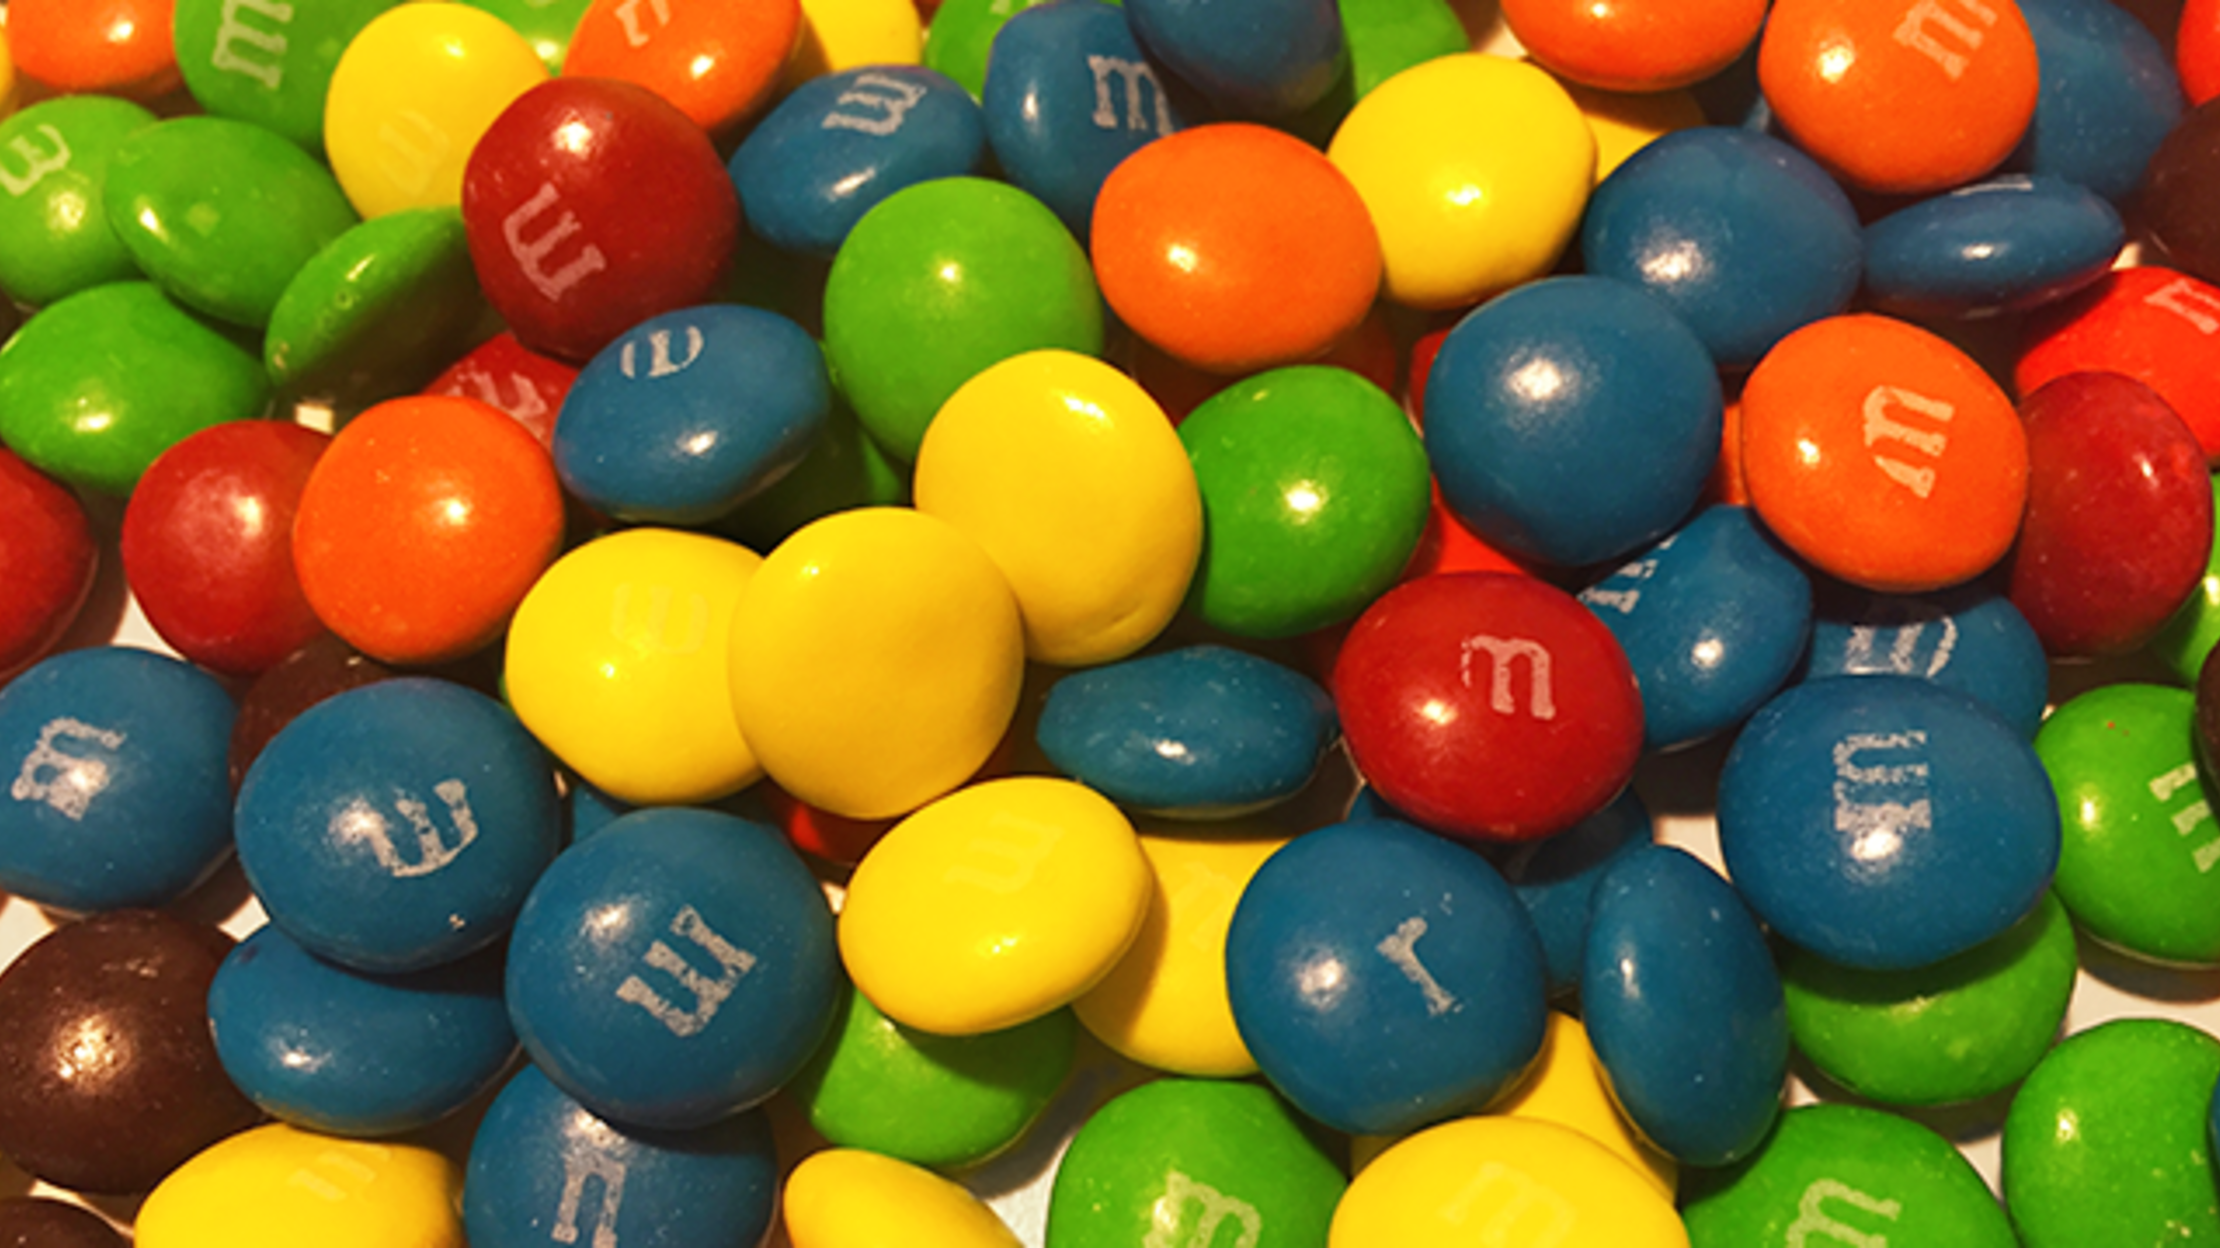 15 Melt-In-Your-Mouth Facts About M&M's